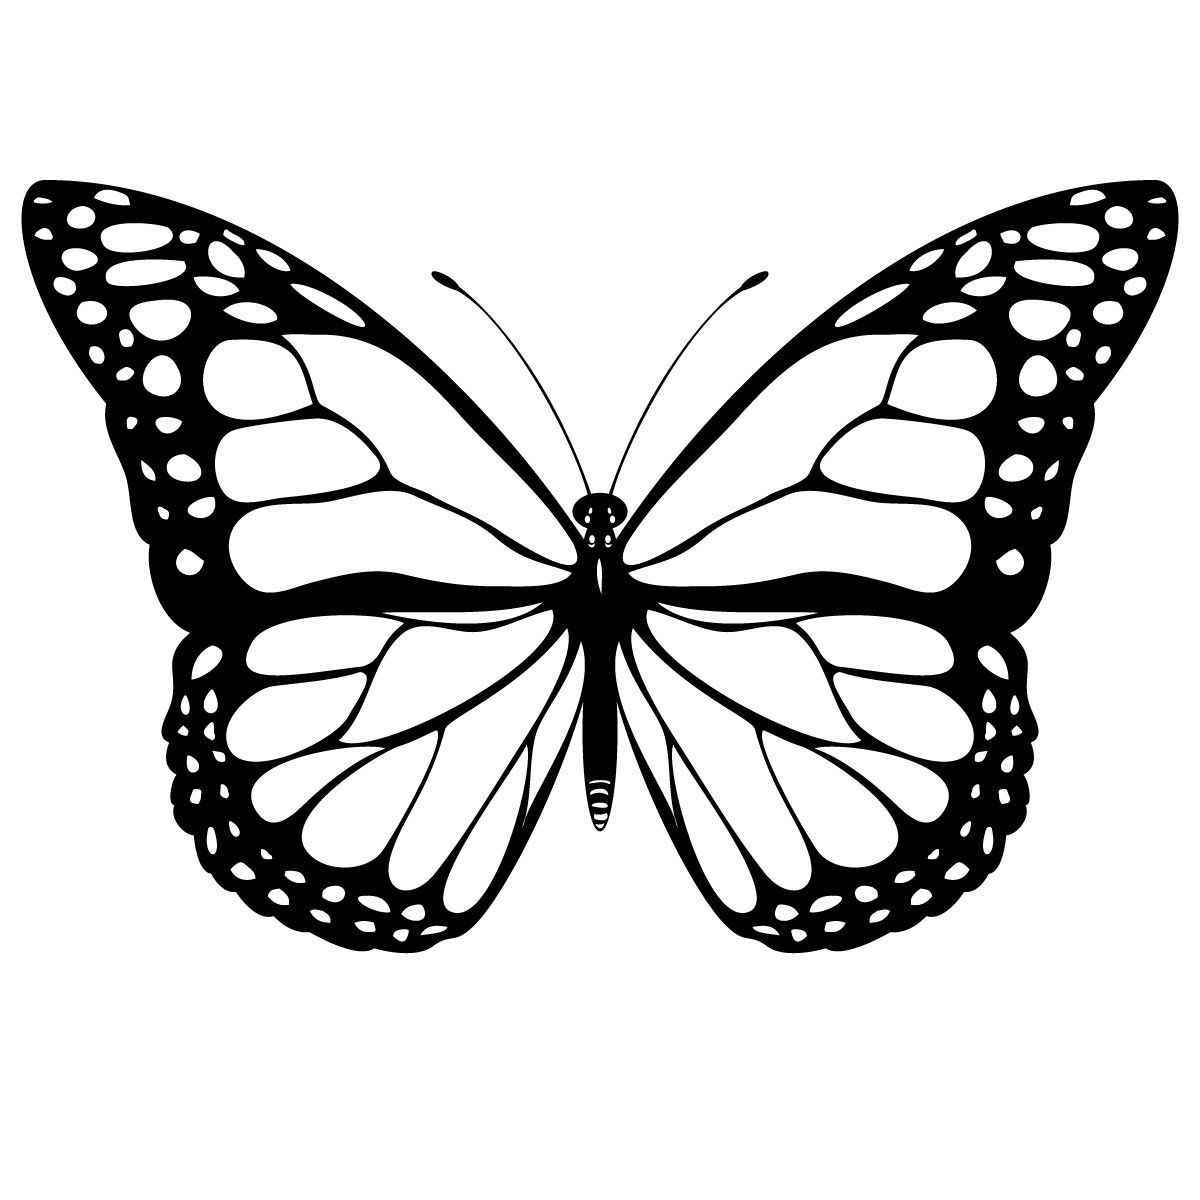 Free Printable Butterfly Coloring Pages For Kids | Butterfly - Free Printable Butterfly Coloring Pages